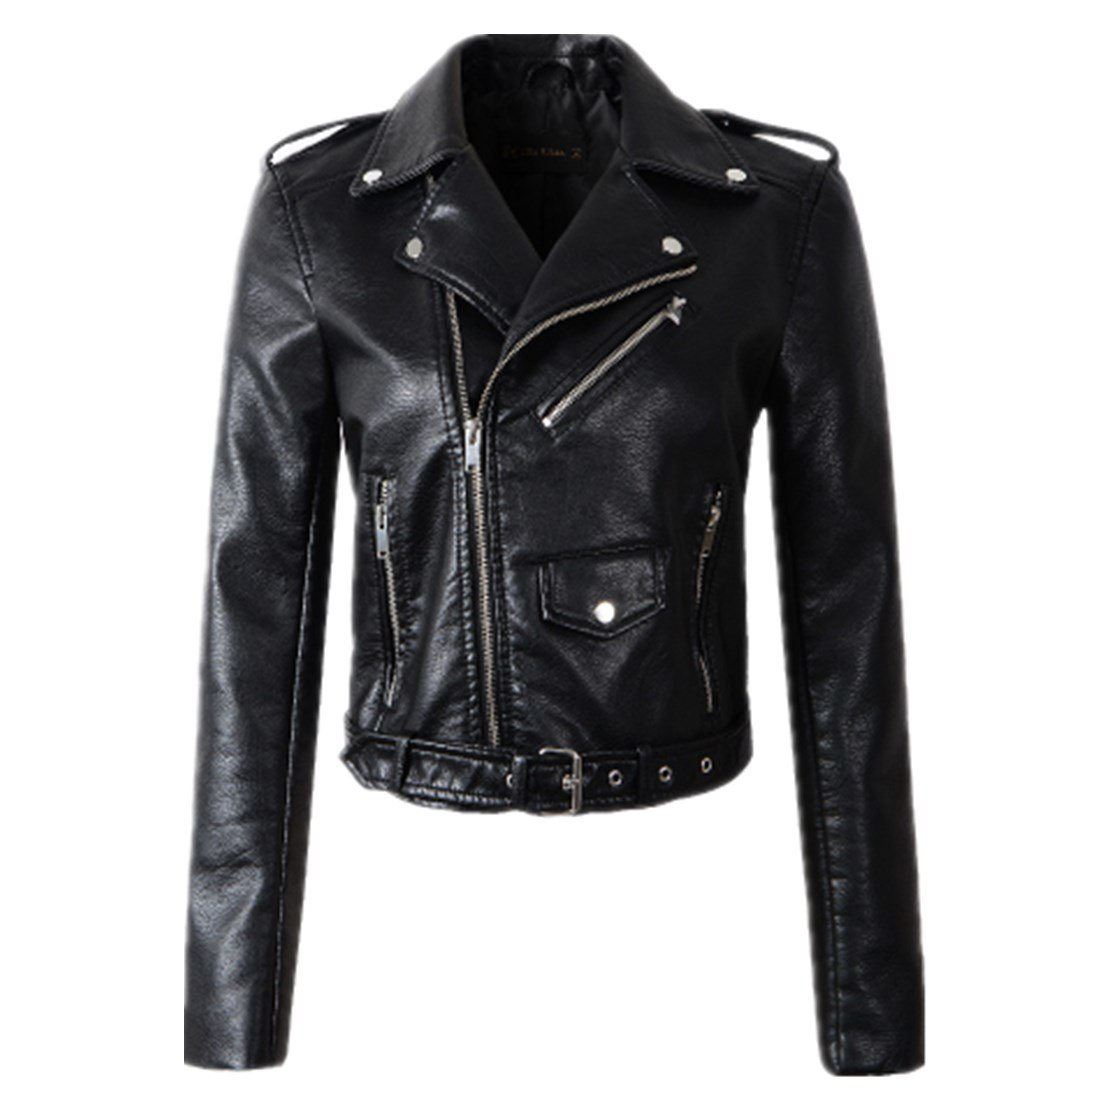 ForeMode Women Autunm Winter Black Faux Leather Jackets Lady Bomber Motorcycle Cool Outerwear Coat with Belt(Black,XXL)